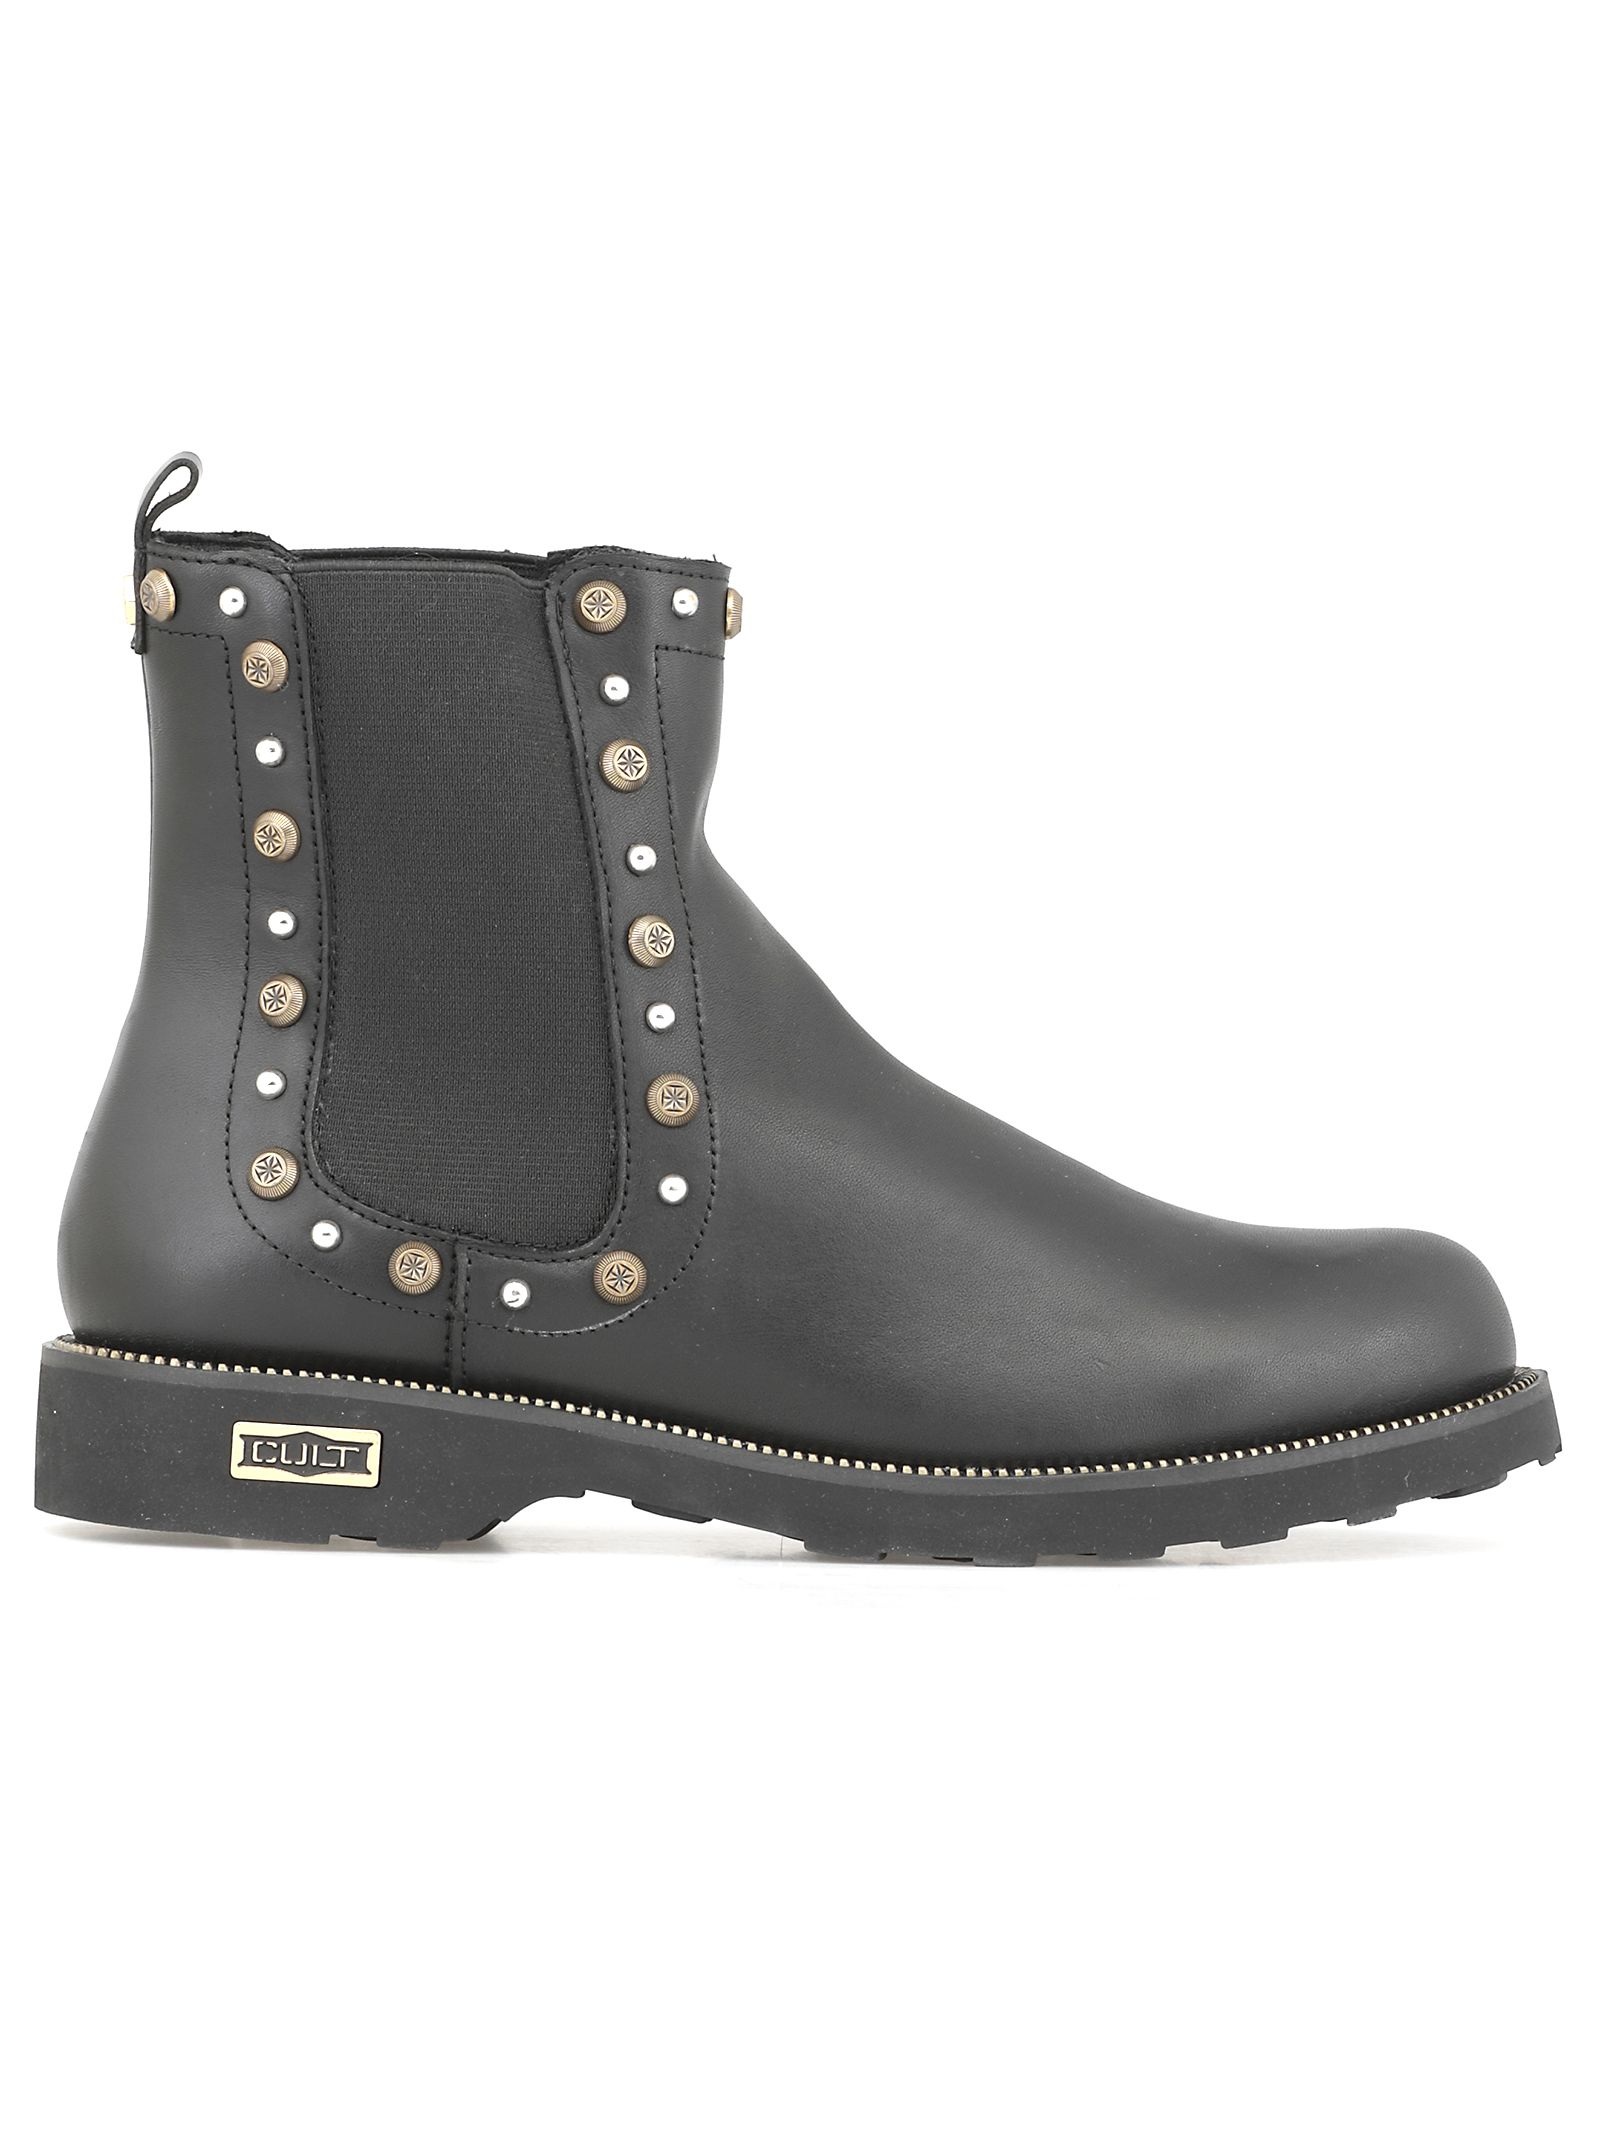 CULT Leather Chelsea Boot in Black